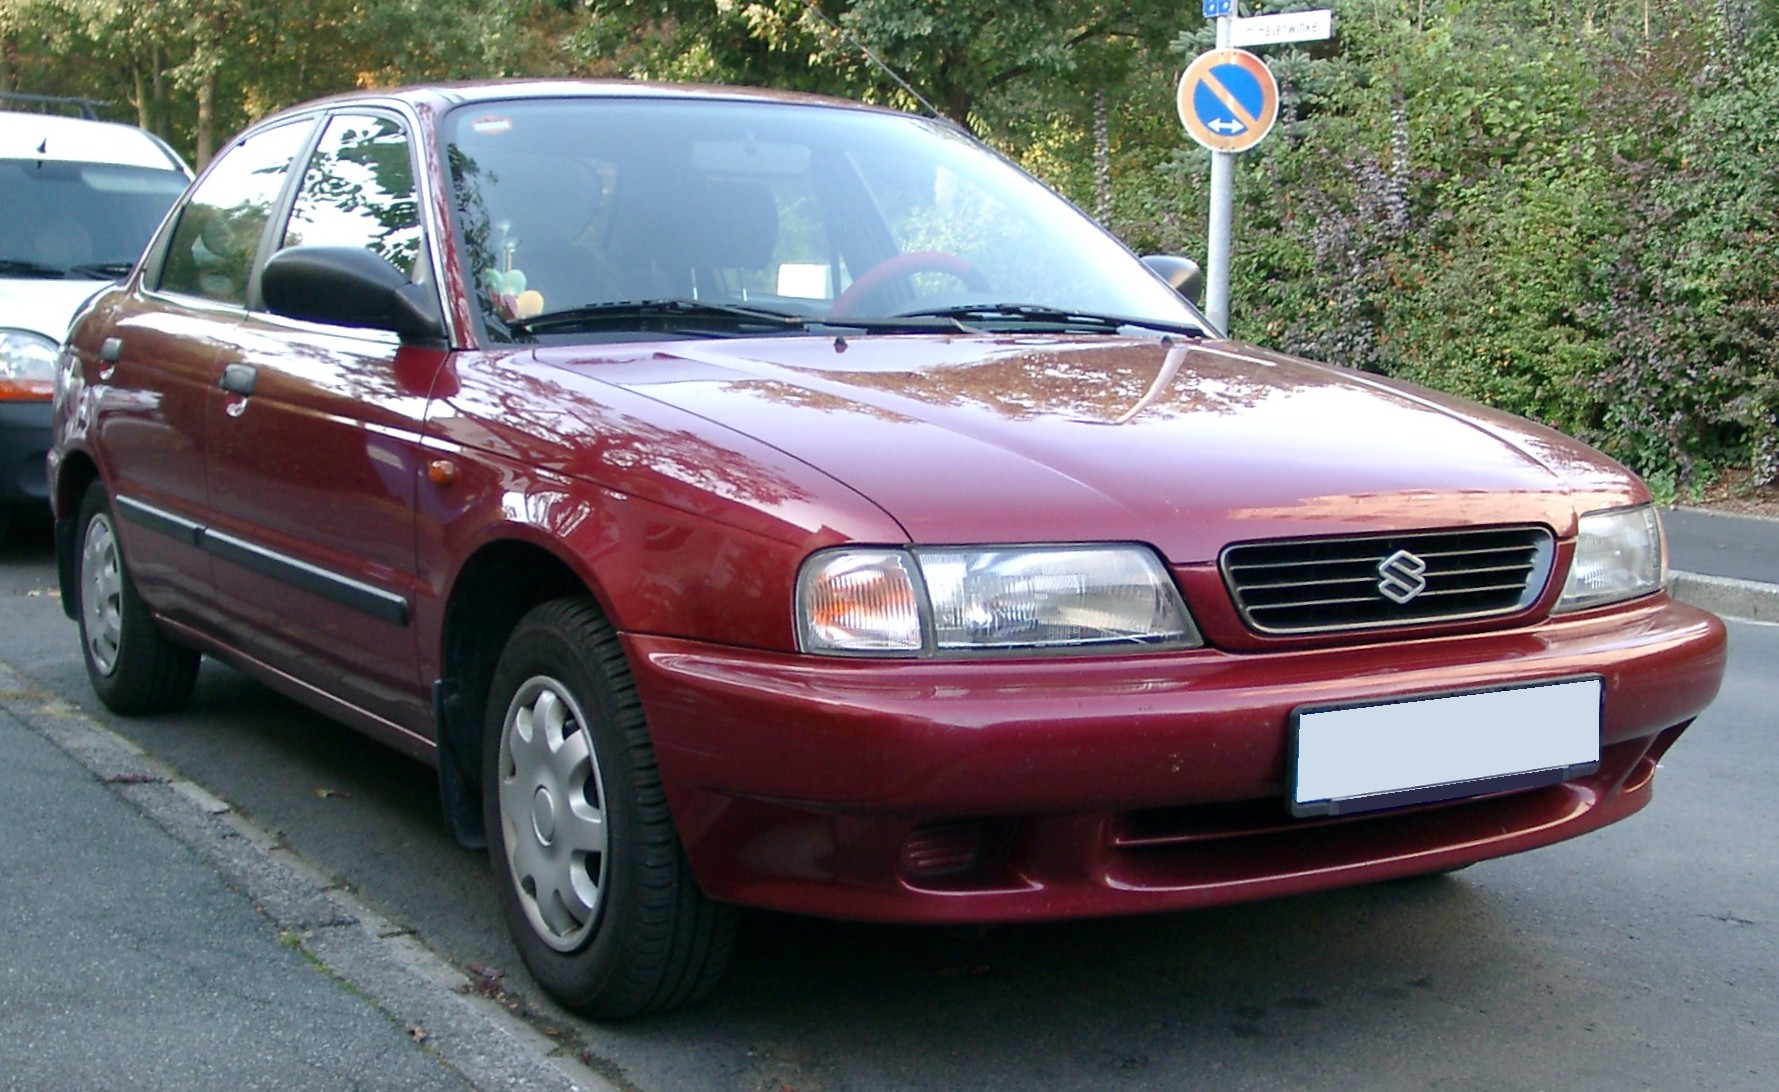 http://upload.wikimedia.org/wikipedia/commons/5/59/Suzuki_Baleno_front_20071004.jpg